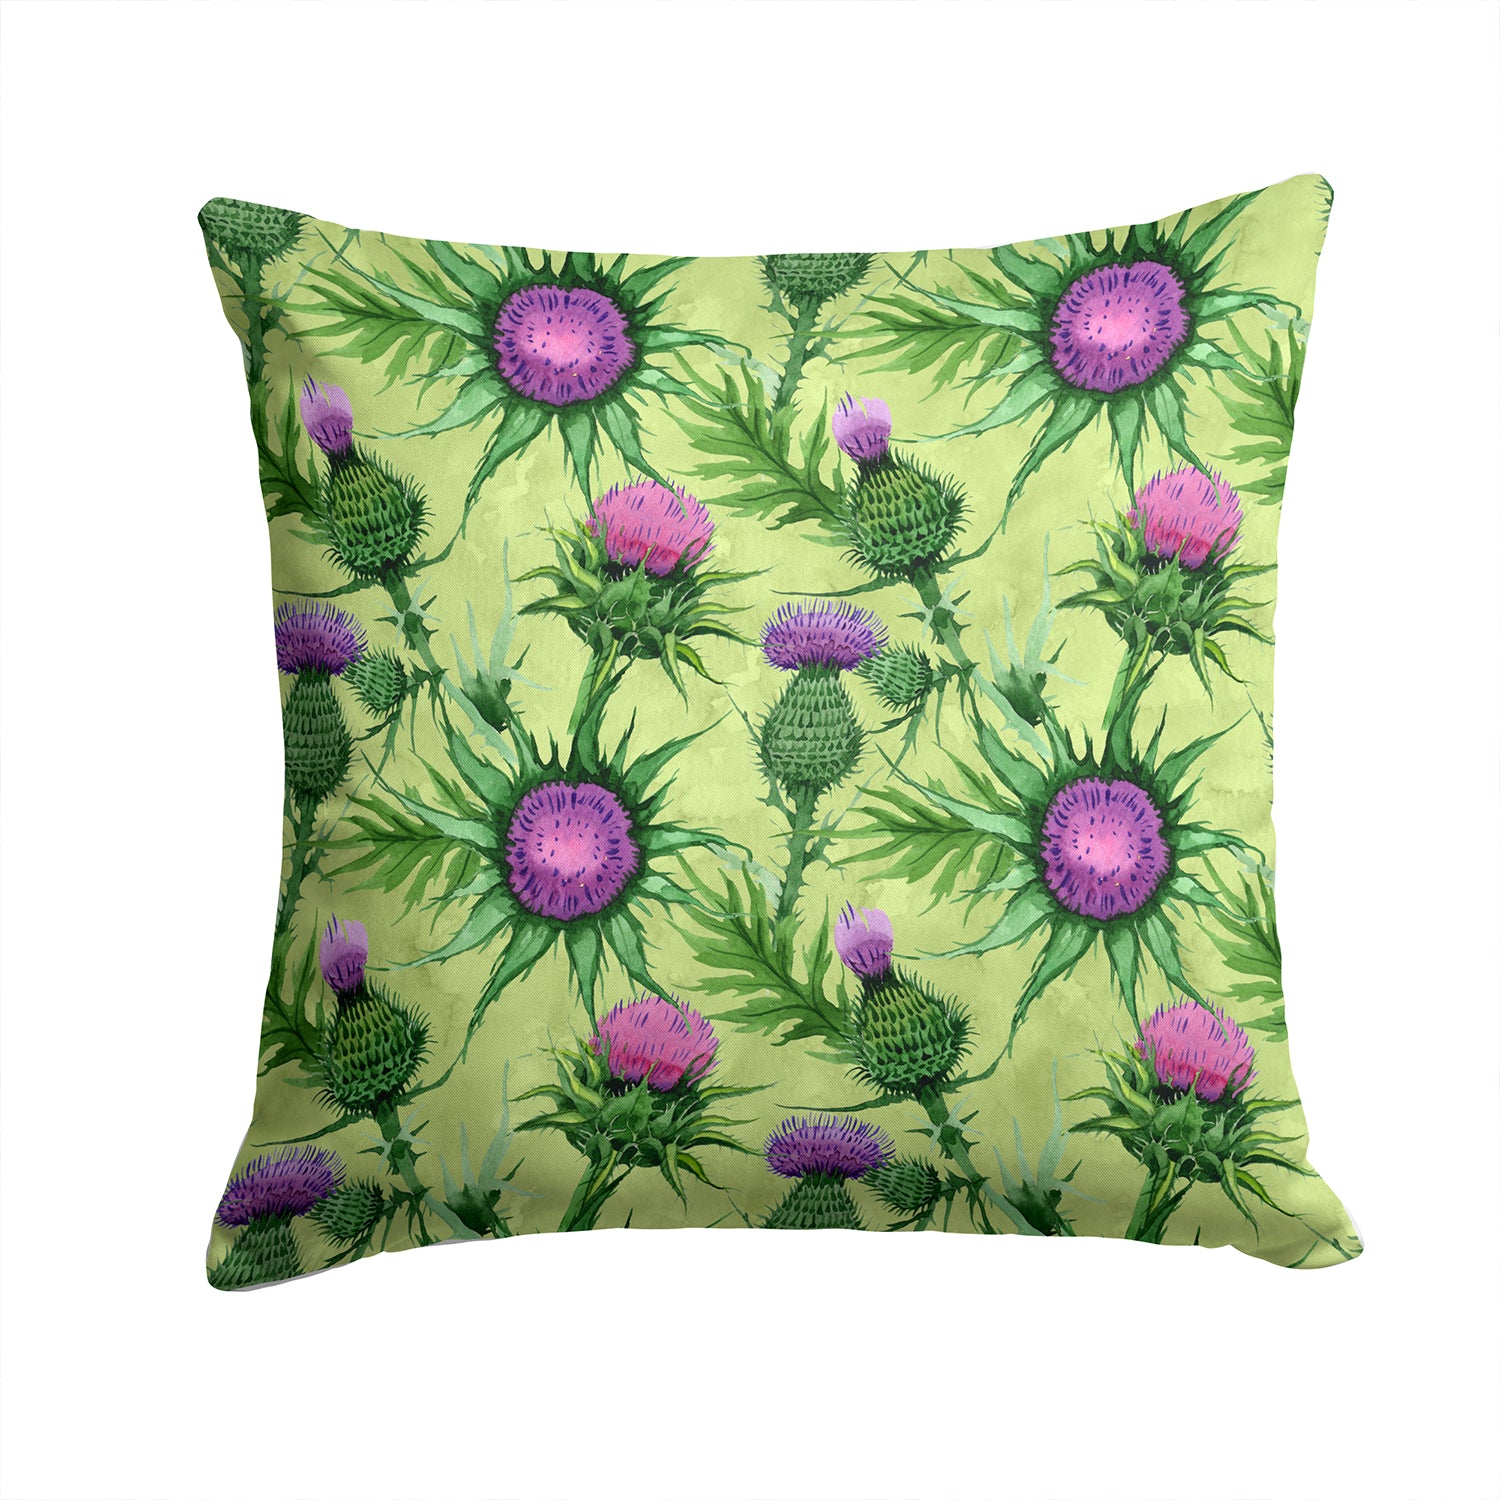 Buy this Thistle Fabric Decorative Pillow CK1699PW1414